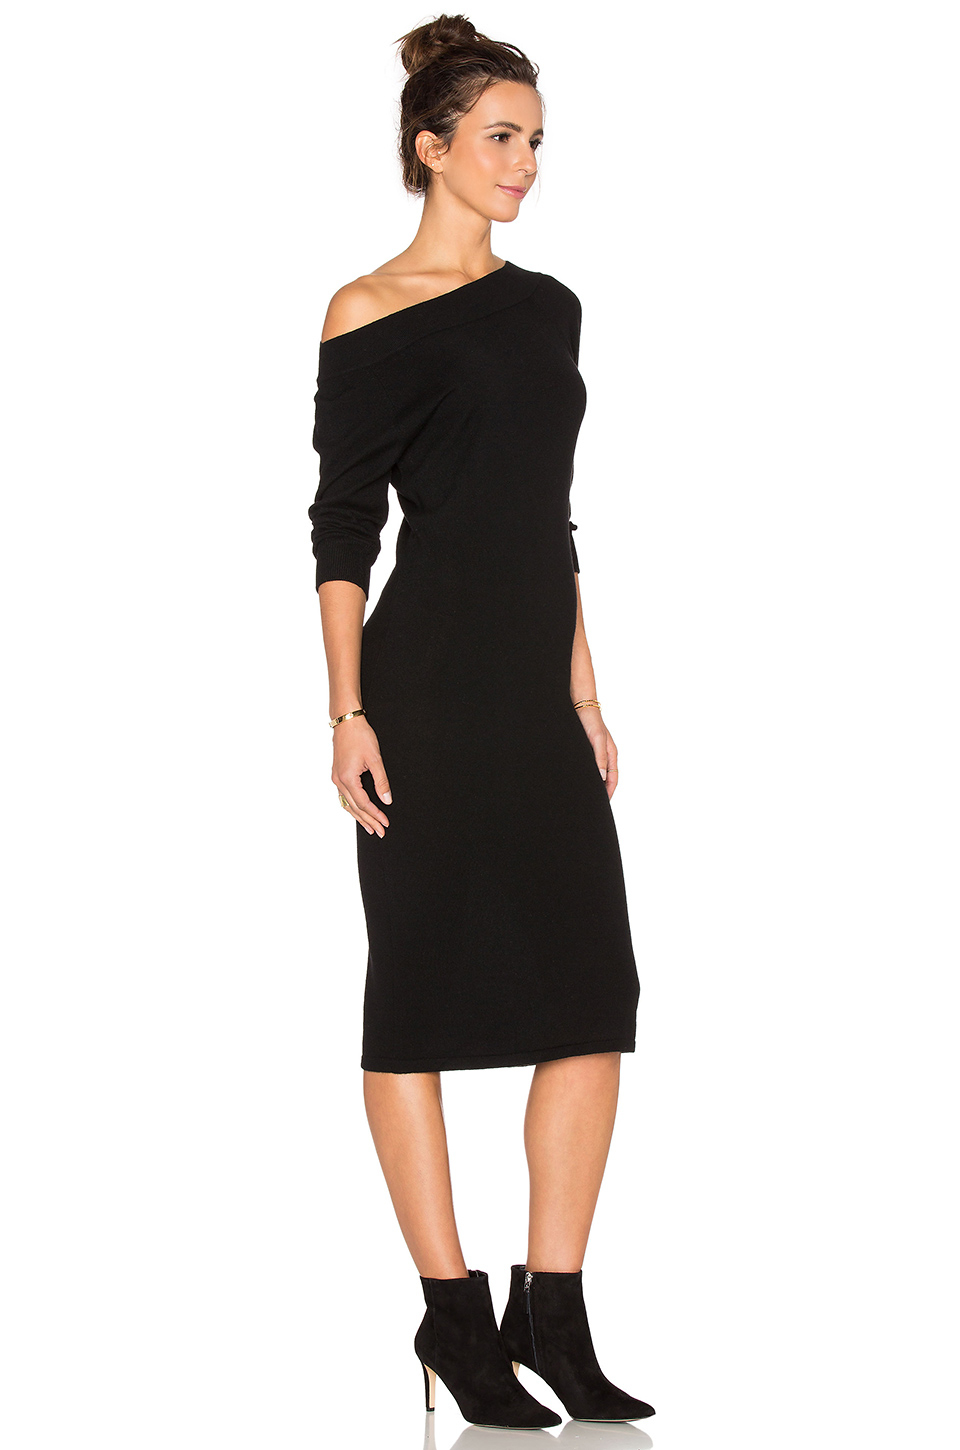 Autumn cashmere Off Shoulder Sweater Dress in Black | Lyst